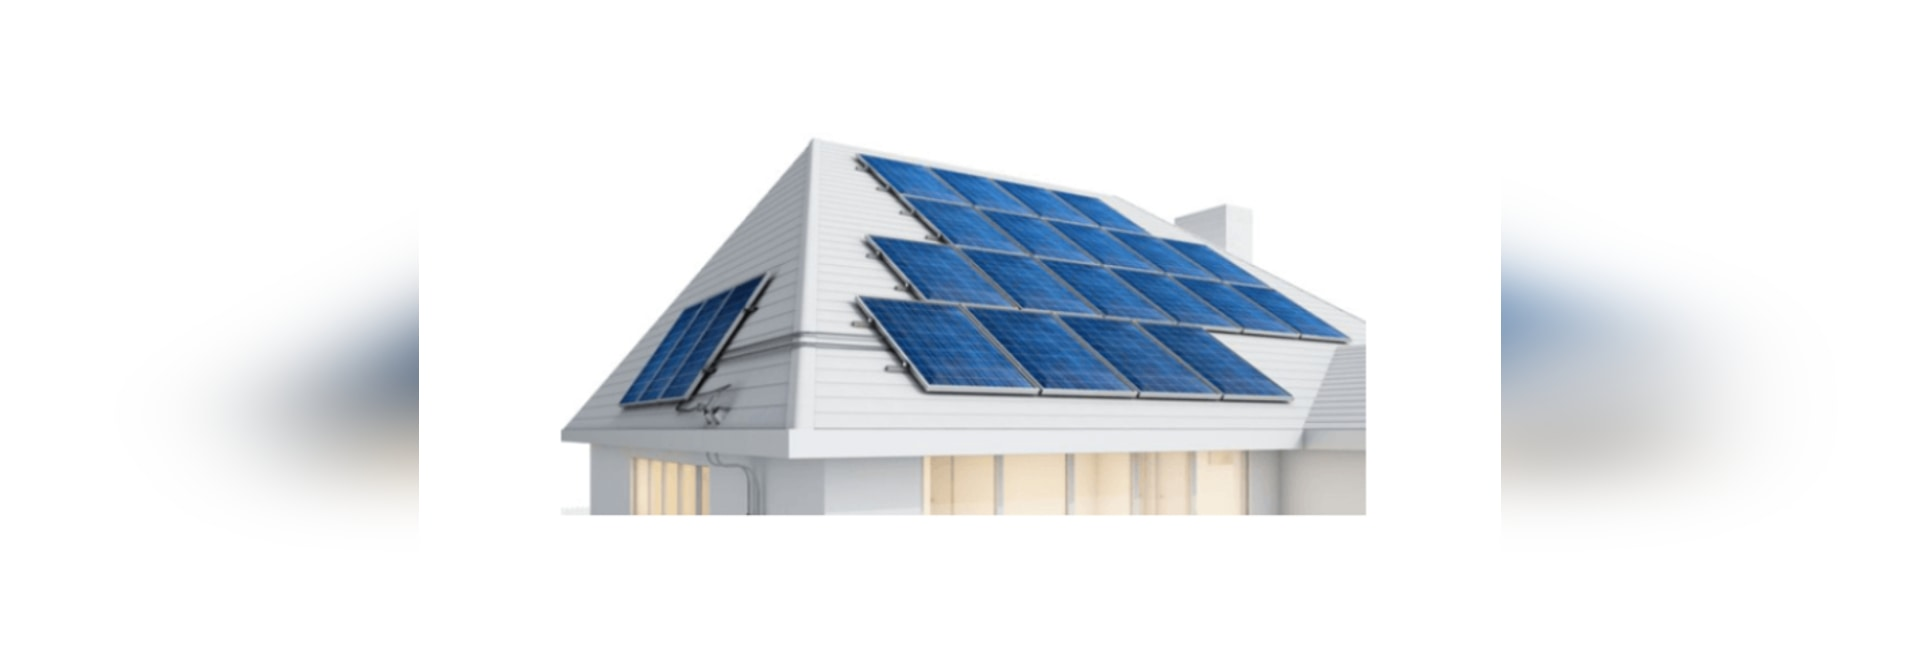 SunPower Equinox Solar Energy Systems Come with Proprietary ...